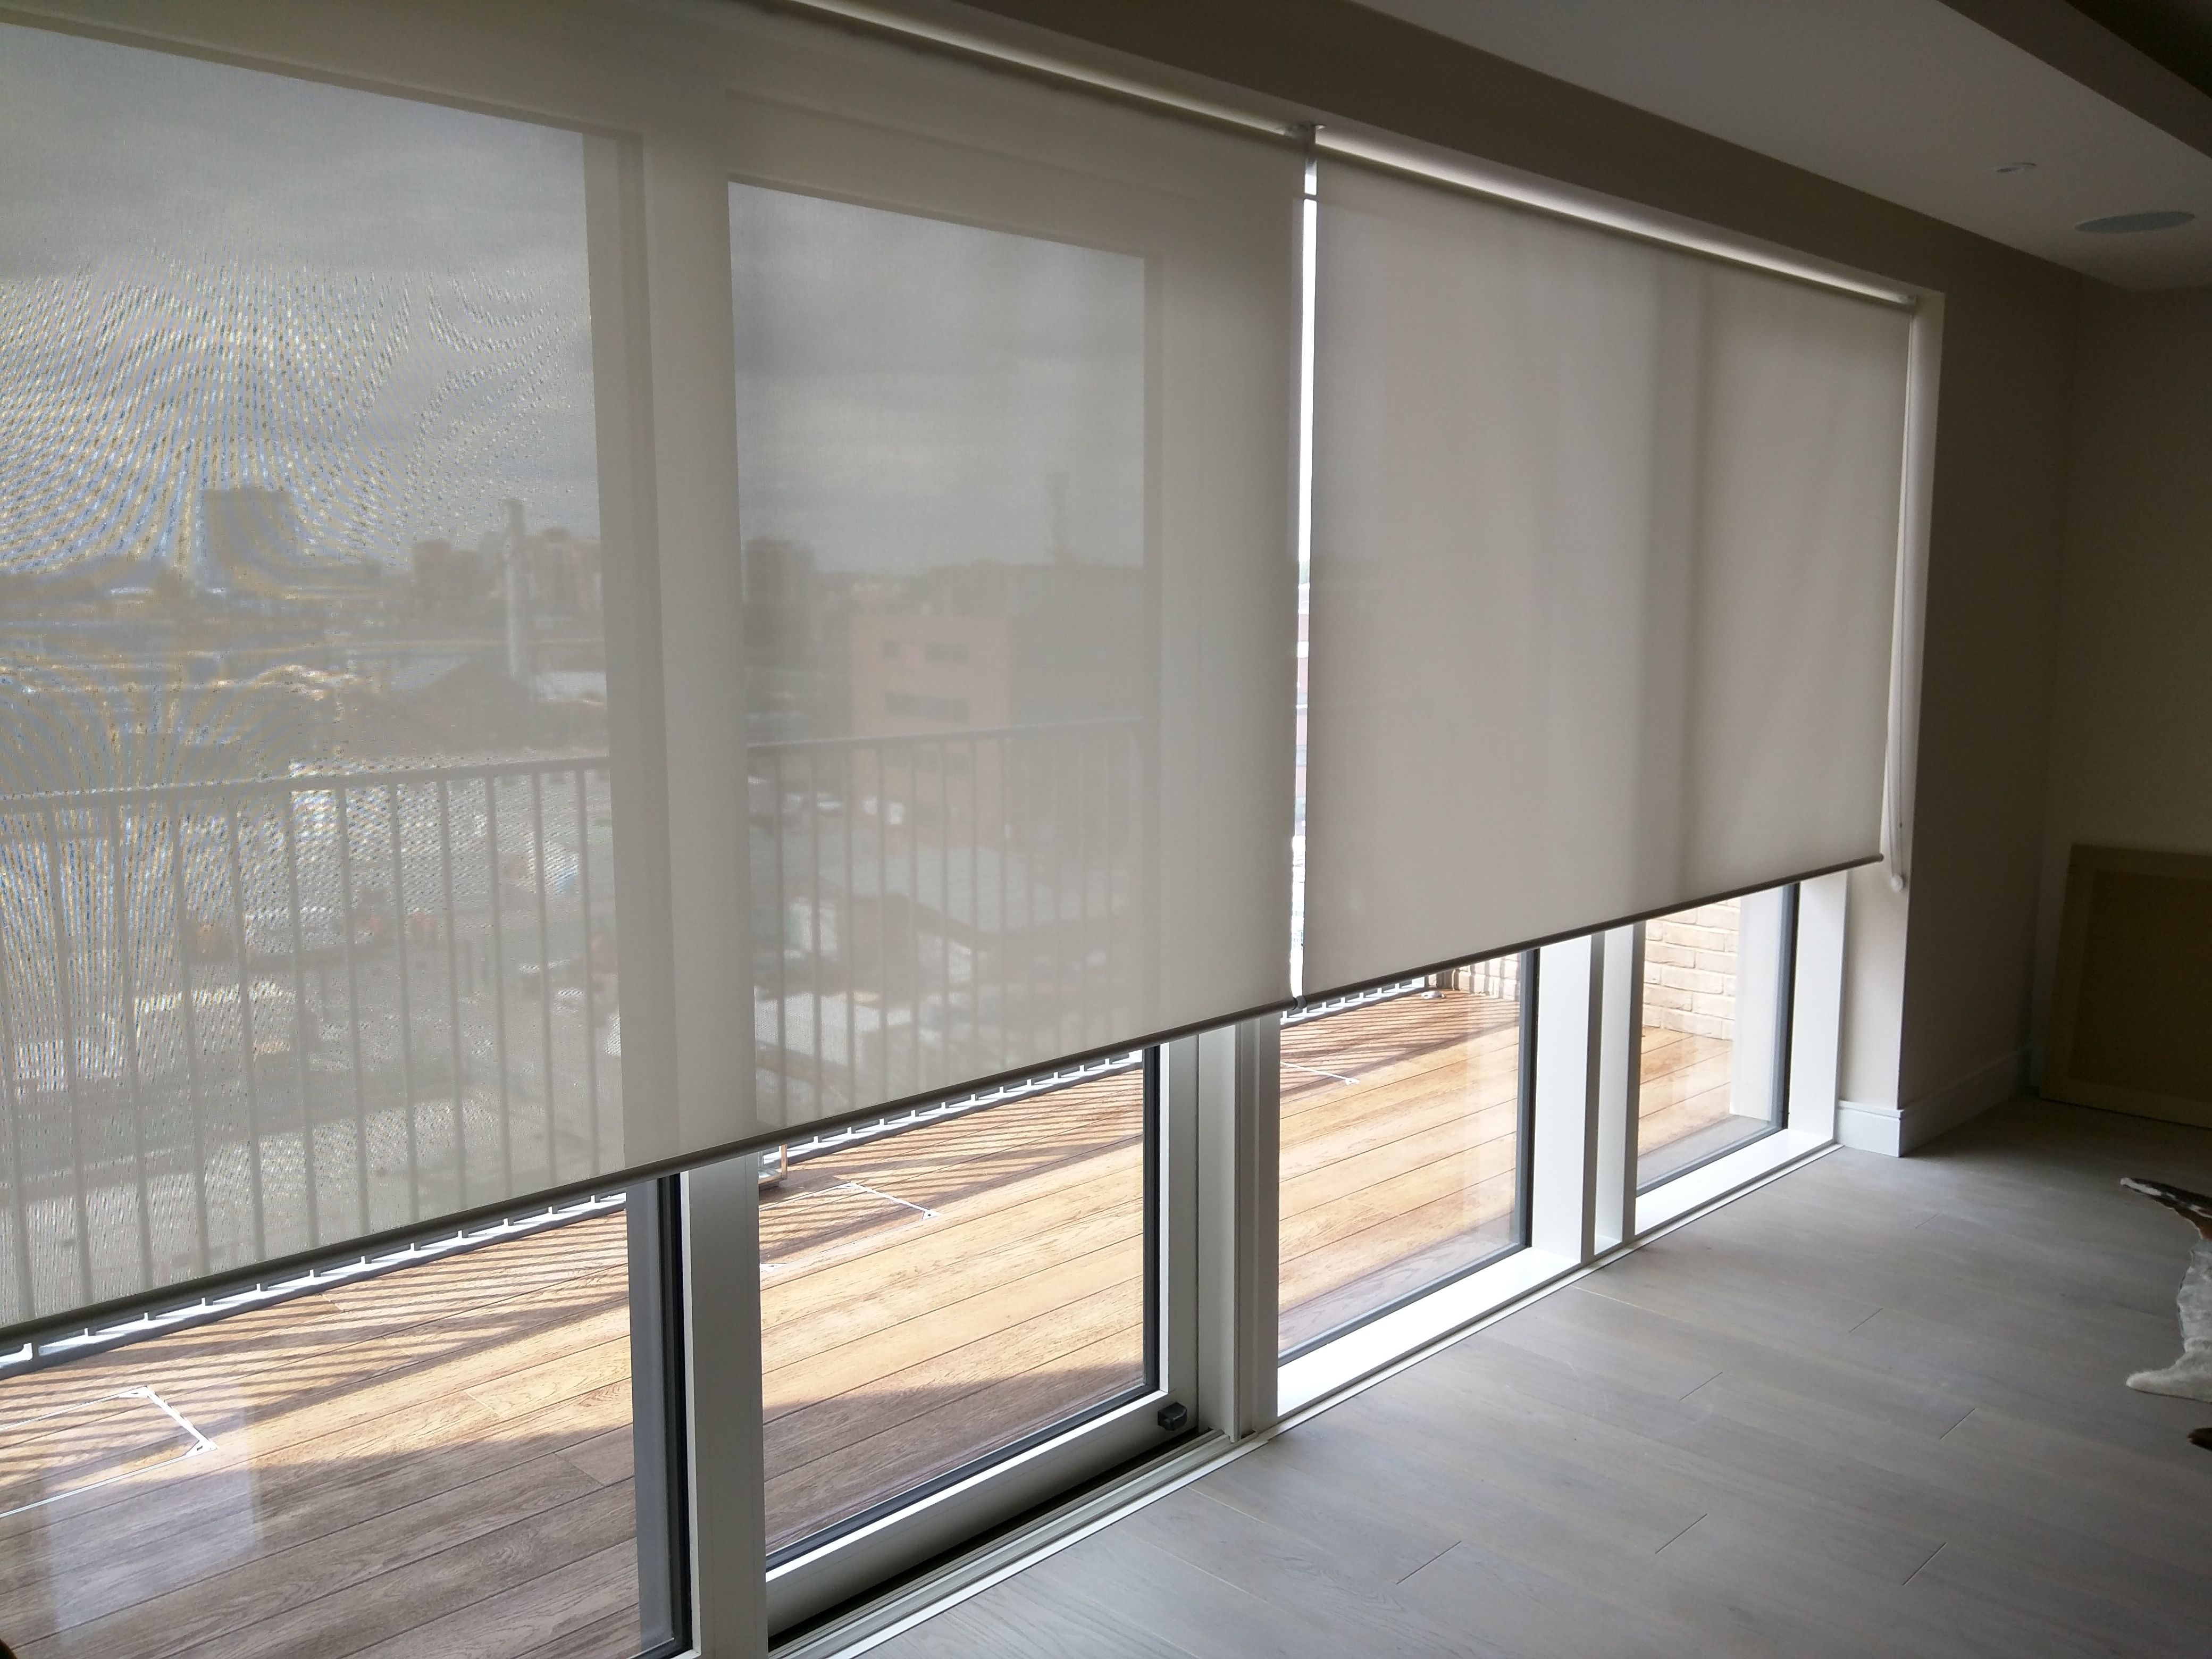 Sunscreen Roller Blinds Floor To Ceiling Windows Sliding Doors London Glass Door Coverings Sliding Door Blinds Door Coverings